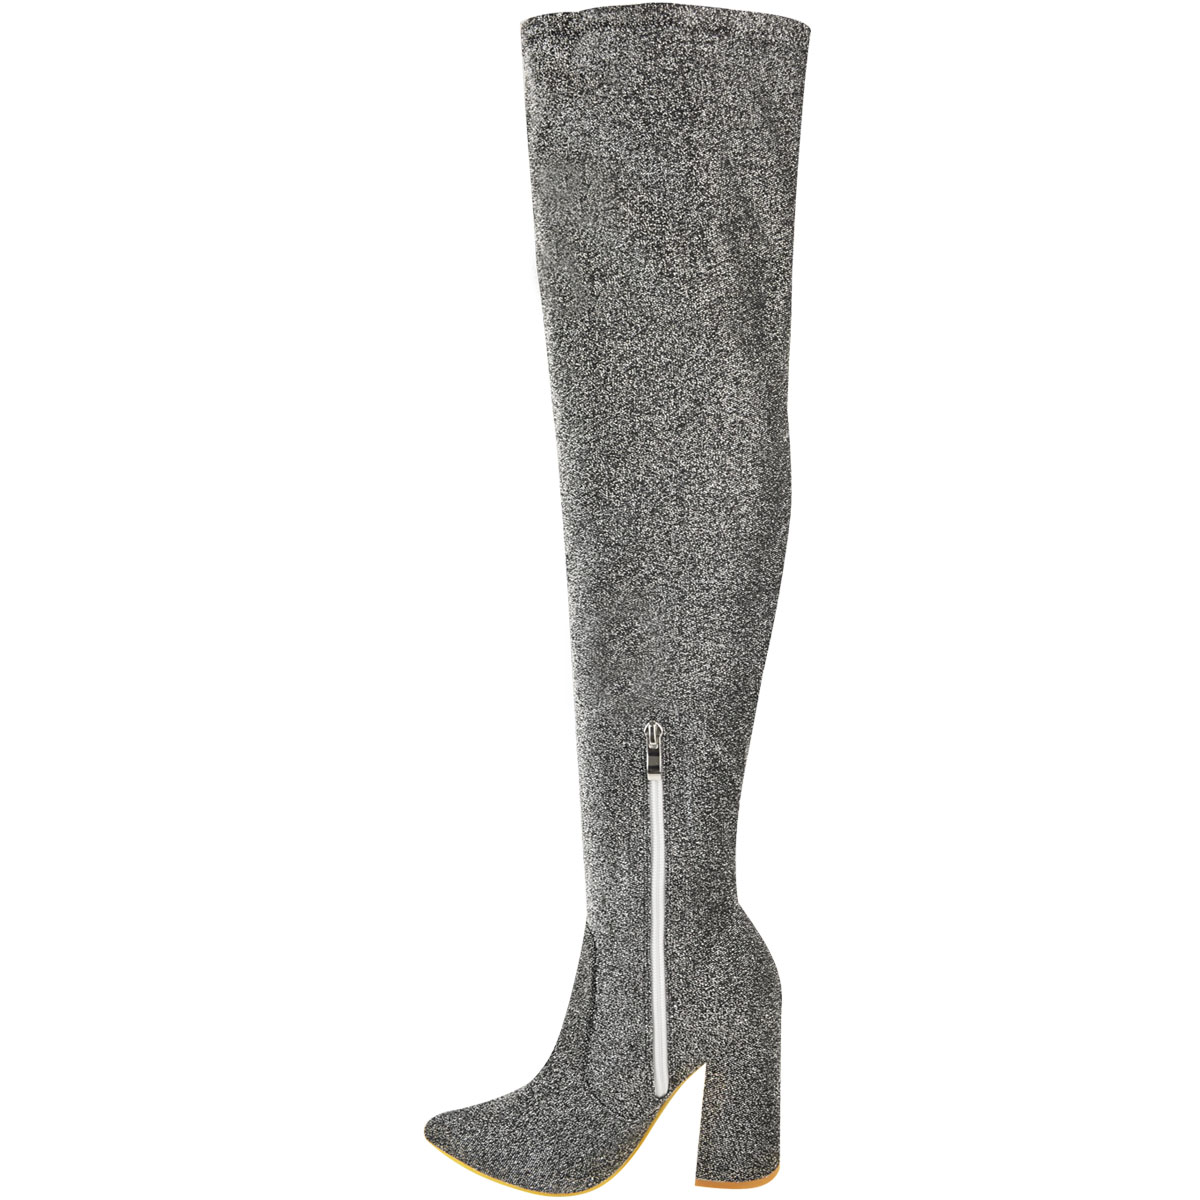 Womens-Ladies-Thigh-High-Boots-Lycra-Over-The-Knee-Pointy-Block-High-Heels-Size Indexbild 20